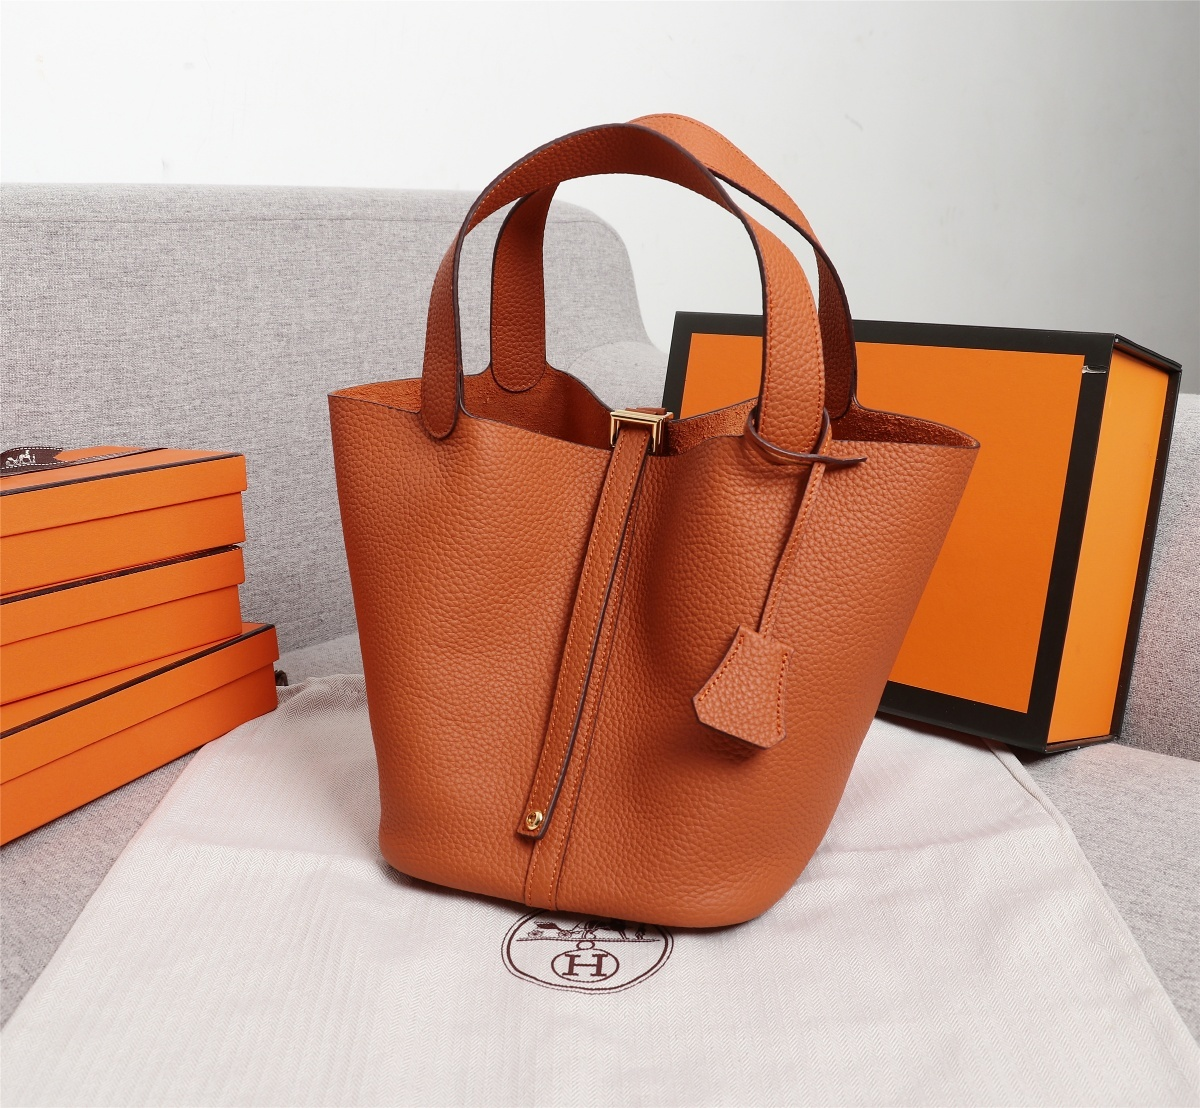 Replica Hermes Picotin Lock Bag 18cm and 22cm Orange with Gold Hardware